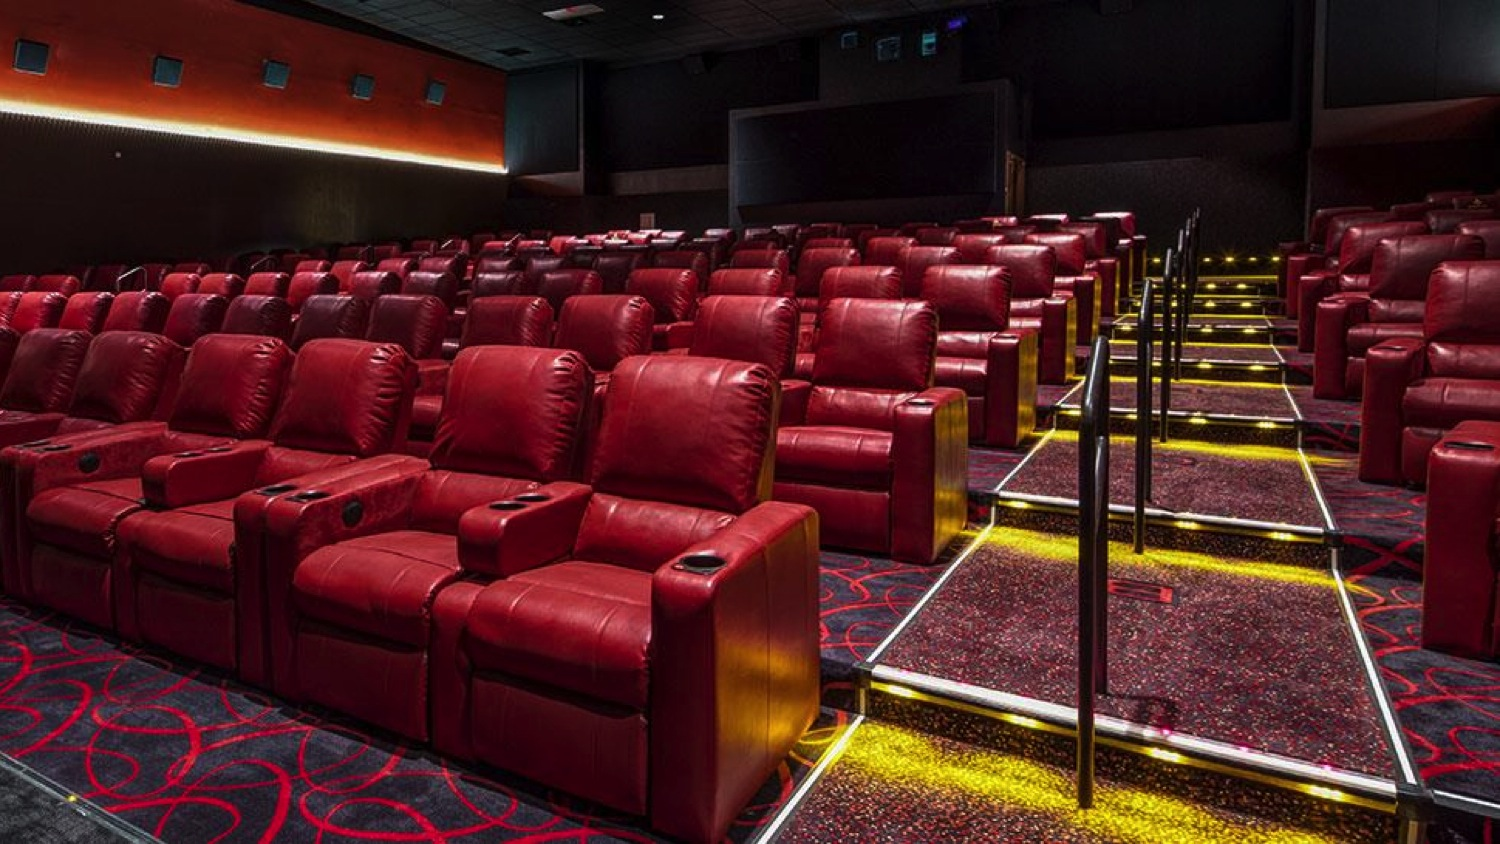 amc movie theaters are trying to increase sales with recliner chairs